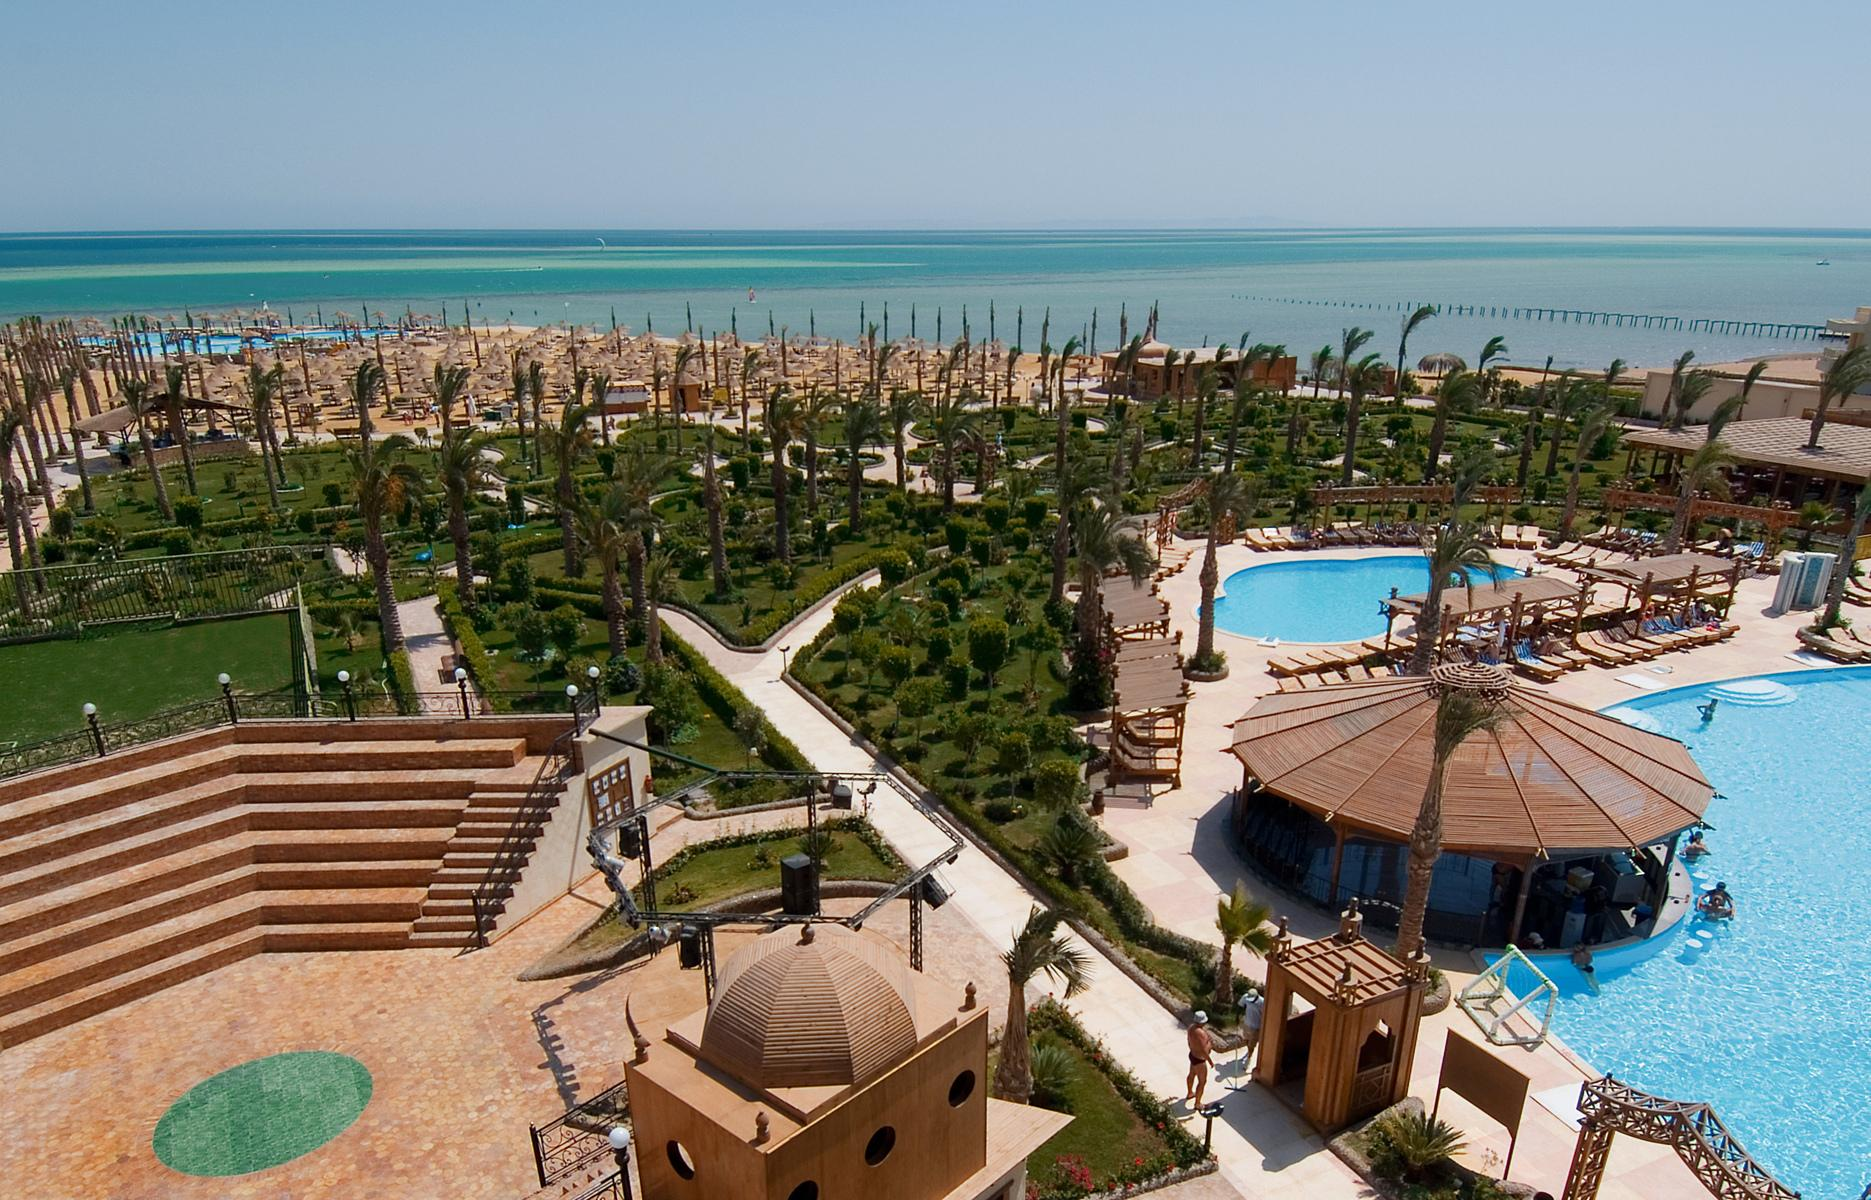 Hawaii Le Jardin Aqua Park in Hurghada, Red Sea, Egypt